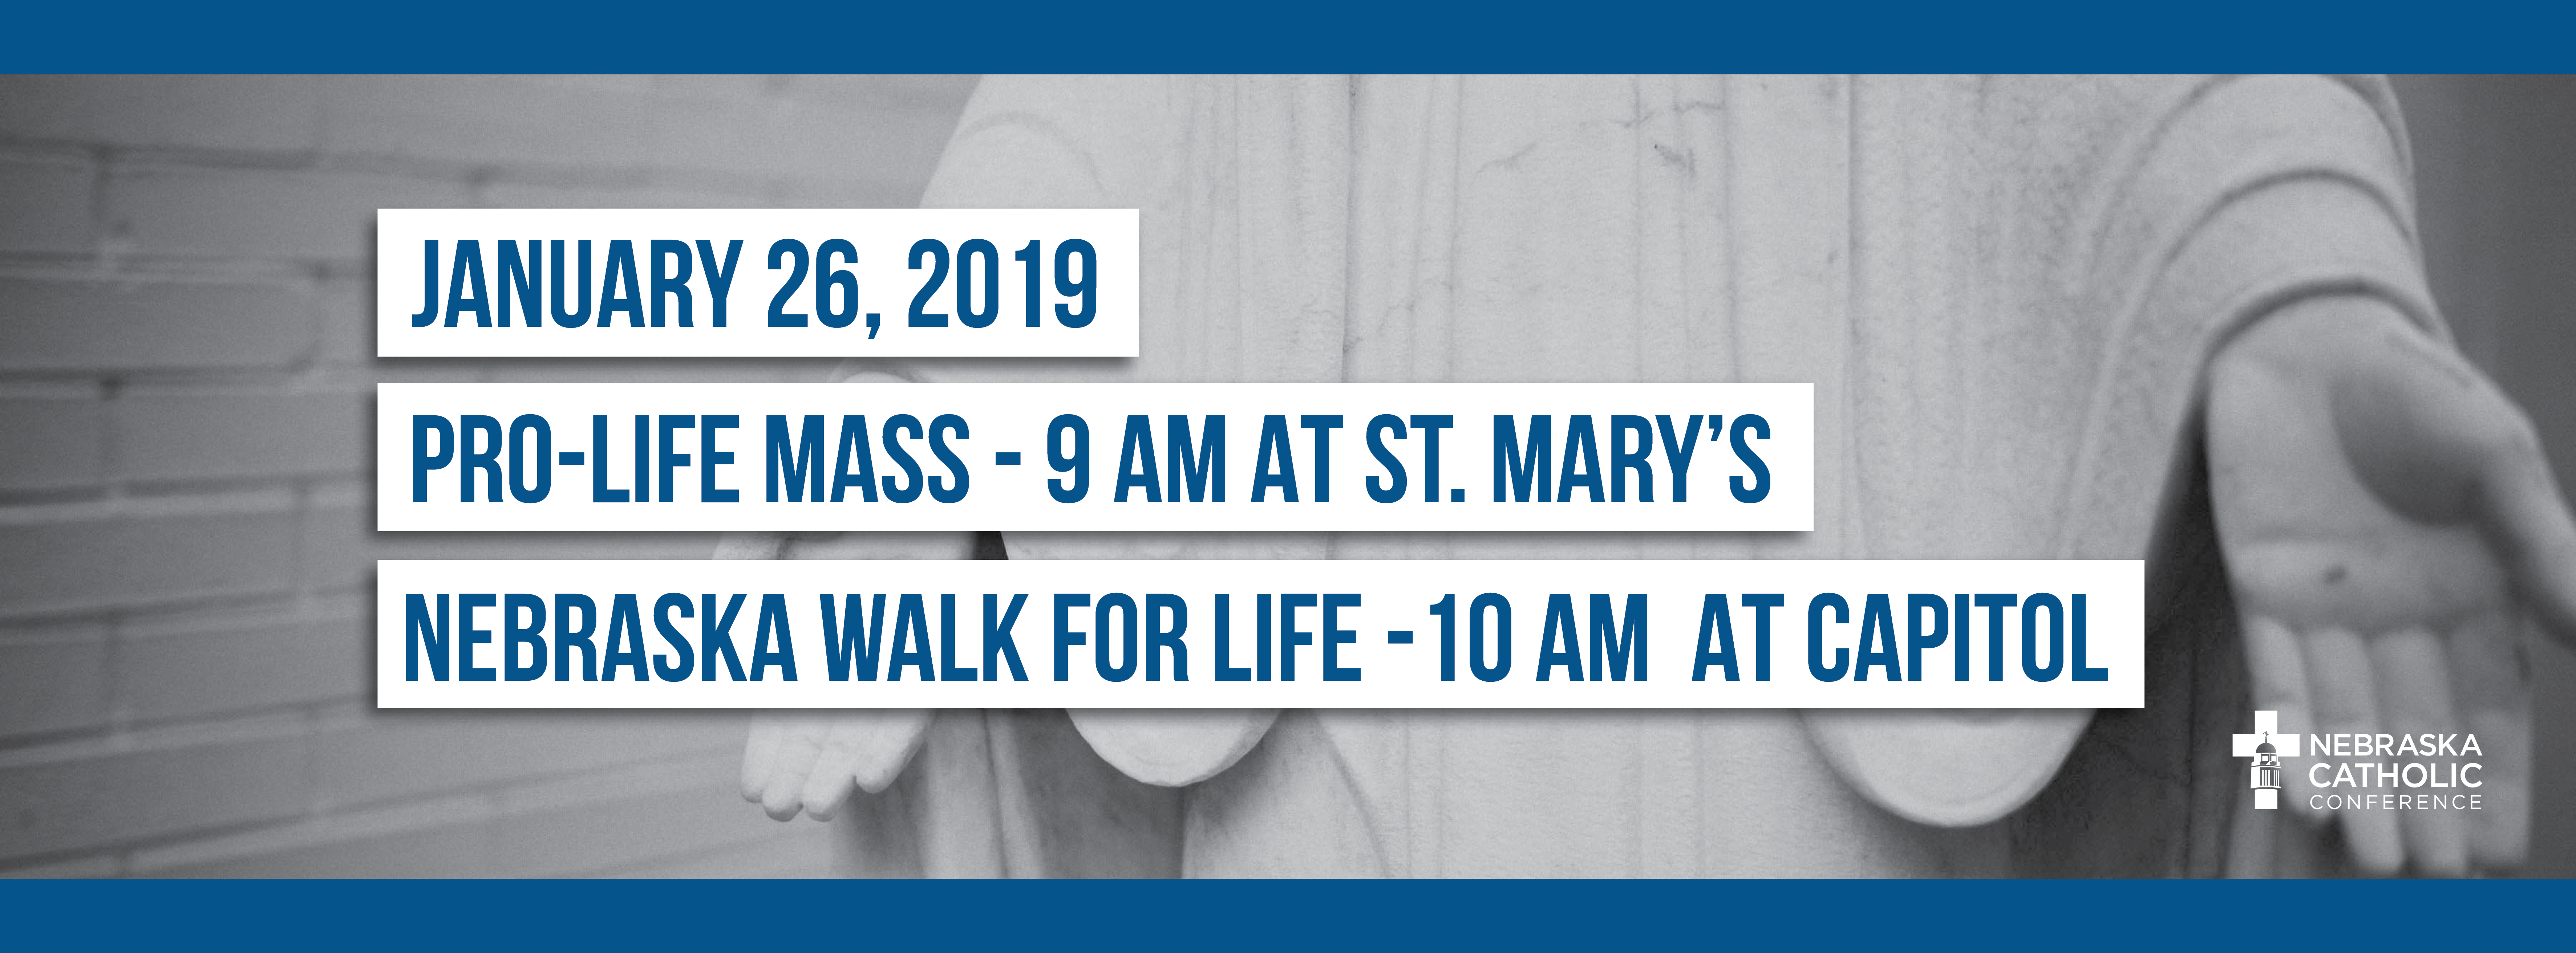 Join us for the Pro-Life Mass!